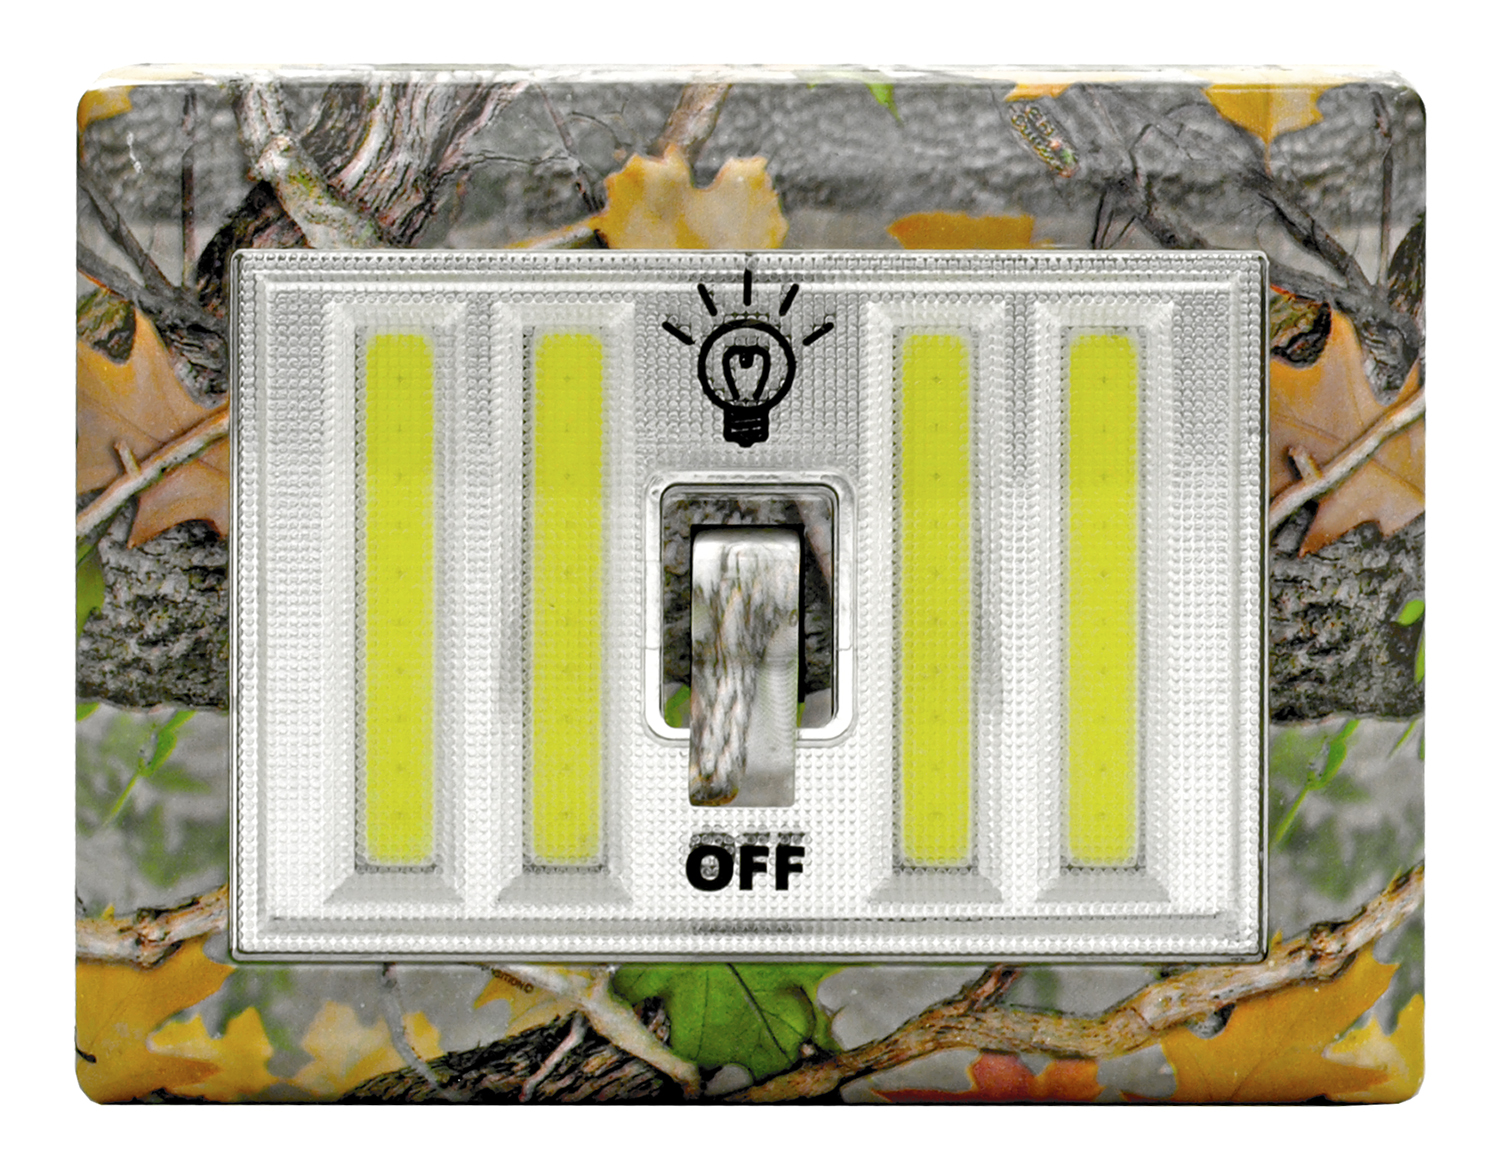 Wall Mount Quad LED Light Switch Night Light - Woodland Camo